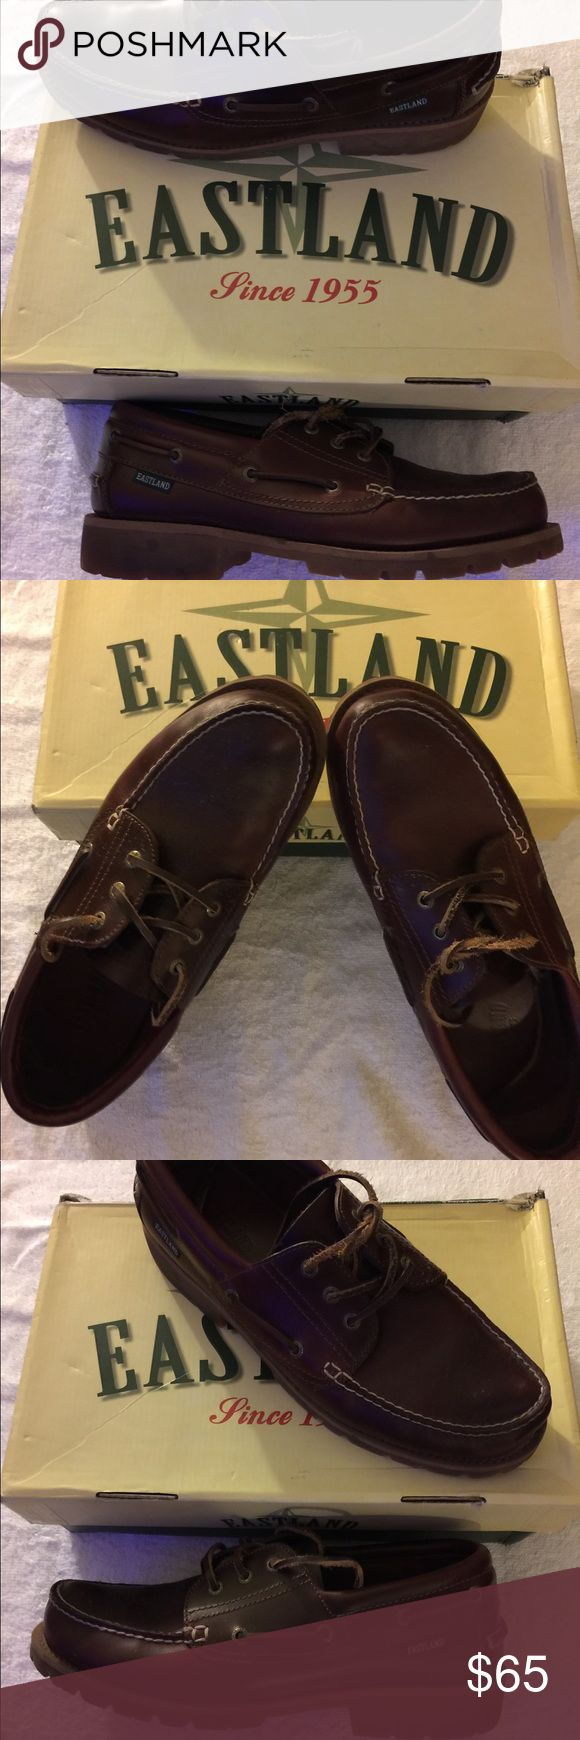 Eastland shoes Throw back eastland dock shoes cordovan is the color wore them less than 5 times eastland Shoes Boat Shoes